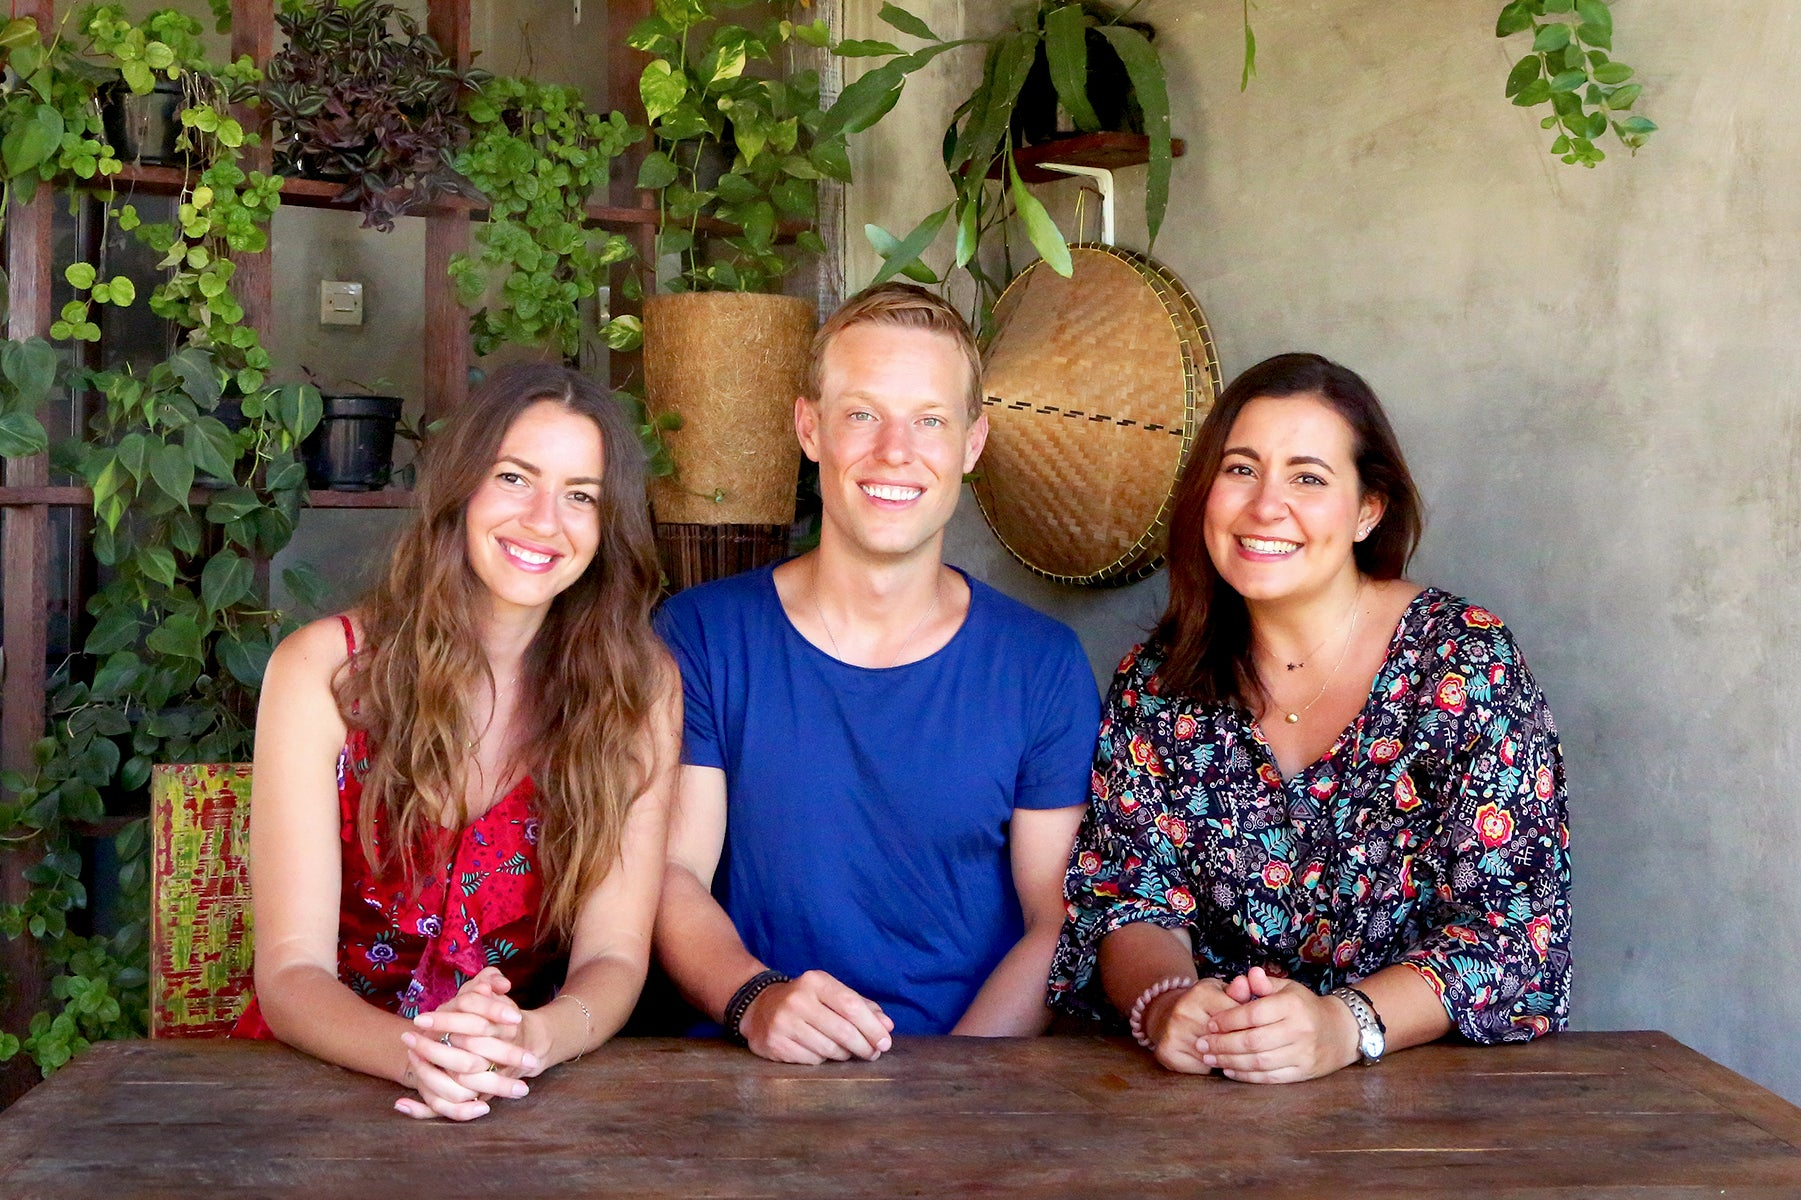 The TAMGA Designs team: founders Yana Dales and Eric Dales and head designer Anna Valero Domenech.